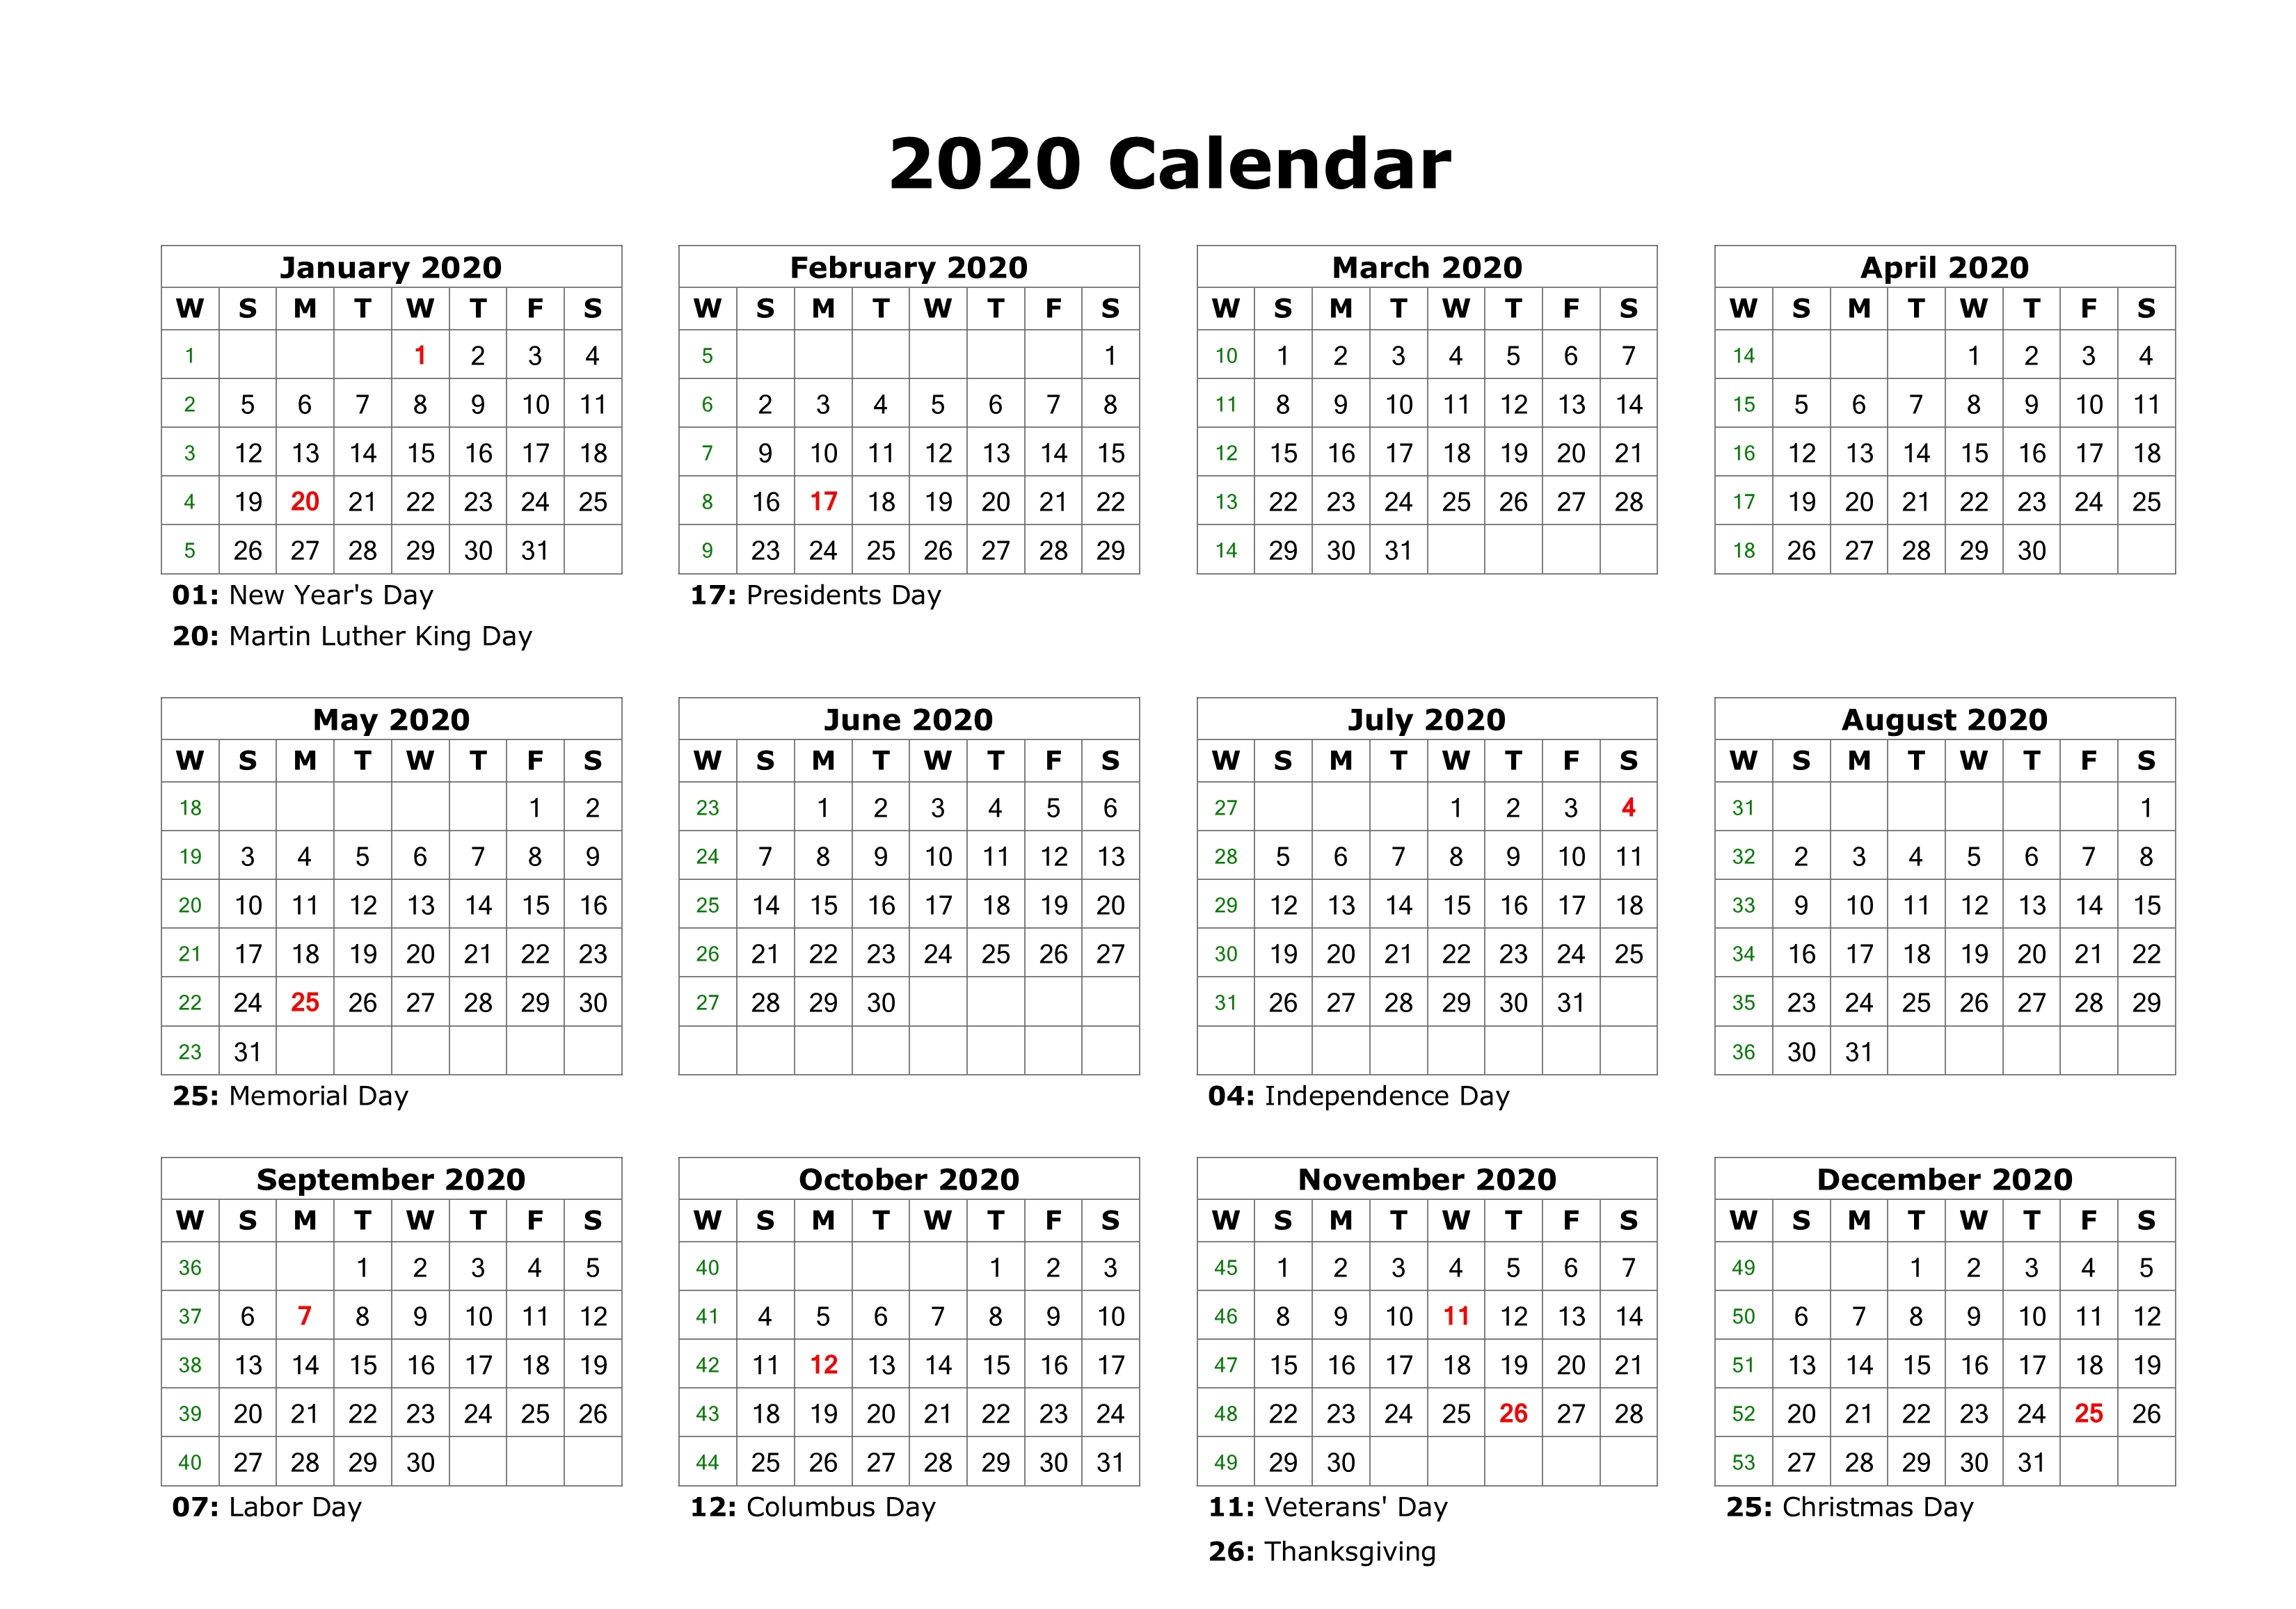 Free Yearly 12 Month Calendar One Page Template Printable inside 2020 Yearly Calendar With Holidays